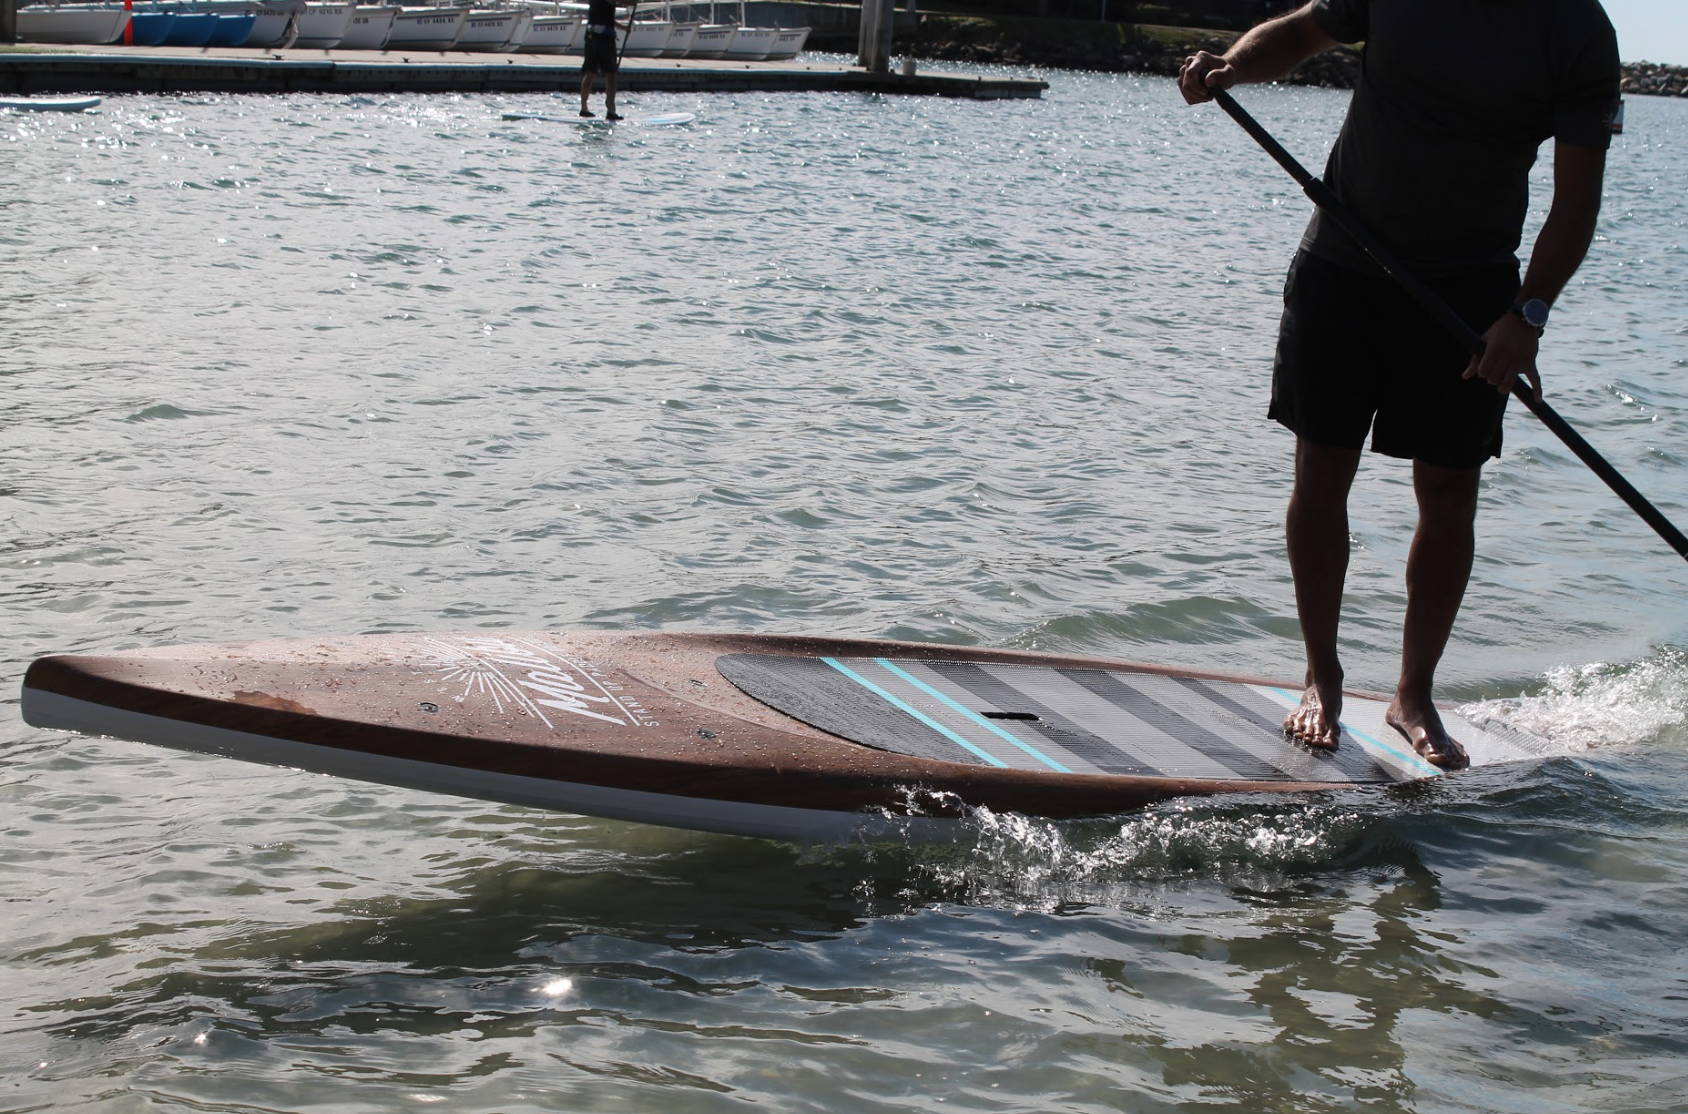 Malibu Tour 11 ft 6 board in wood wrap VFT close up photo with water splashing